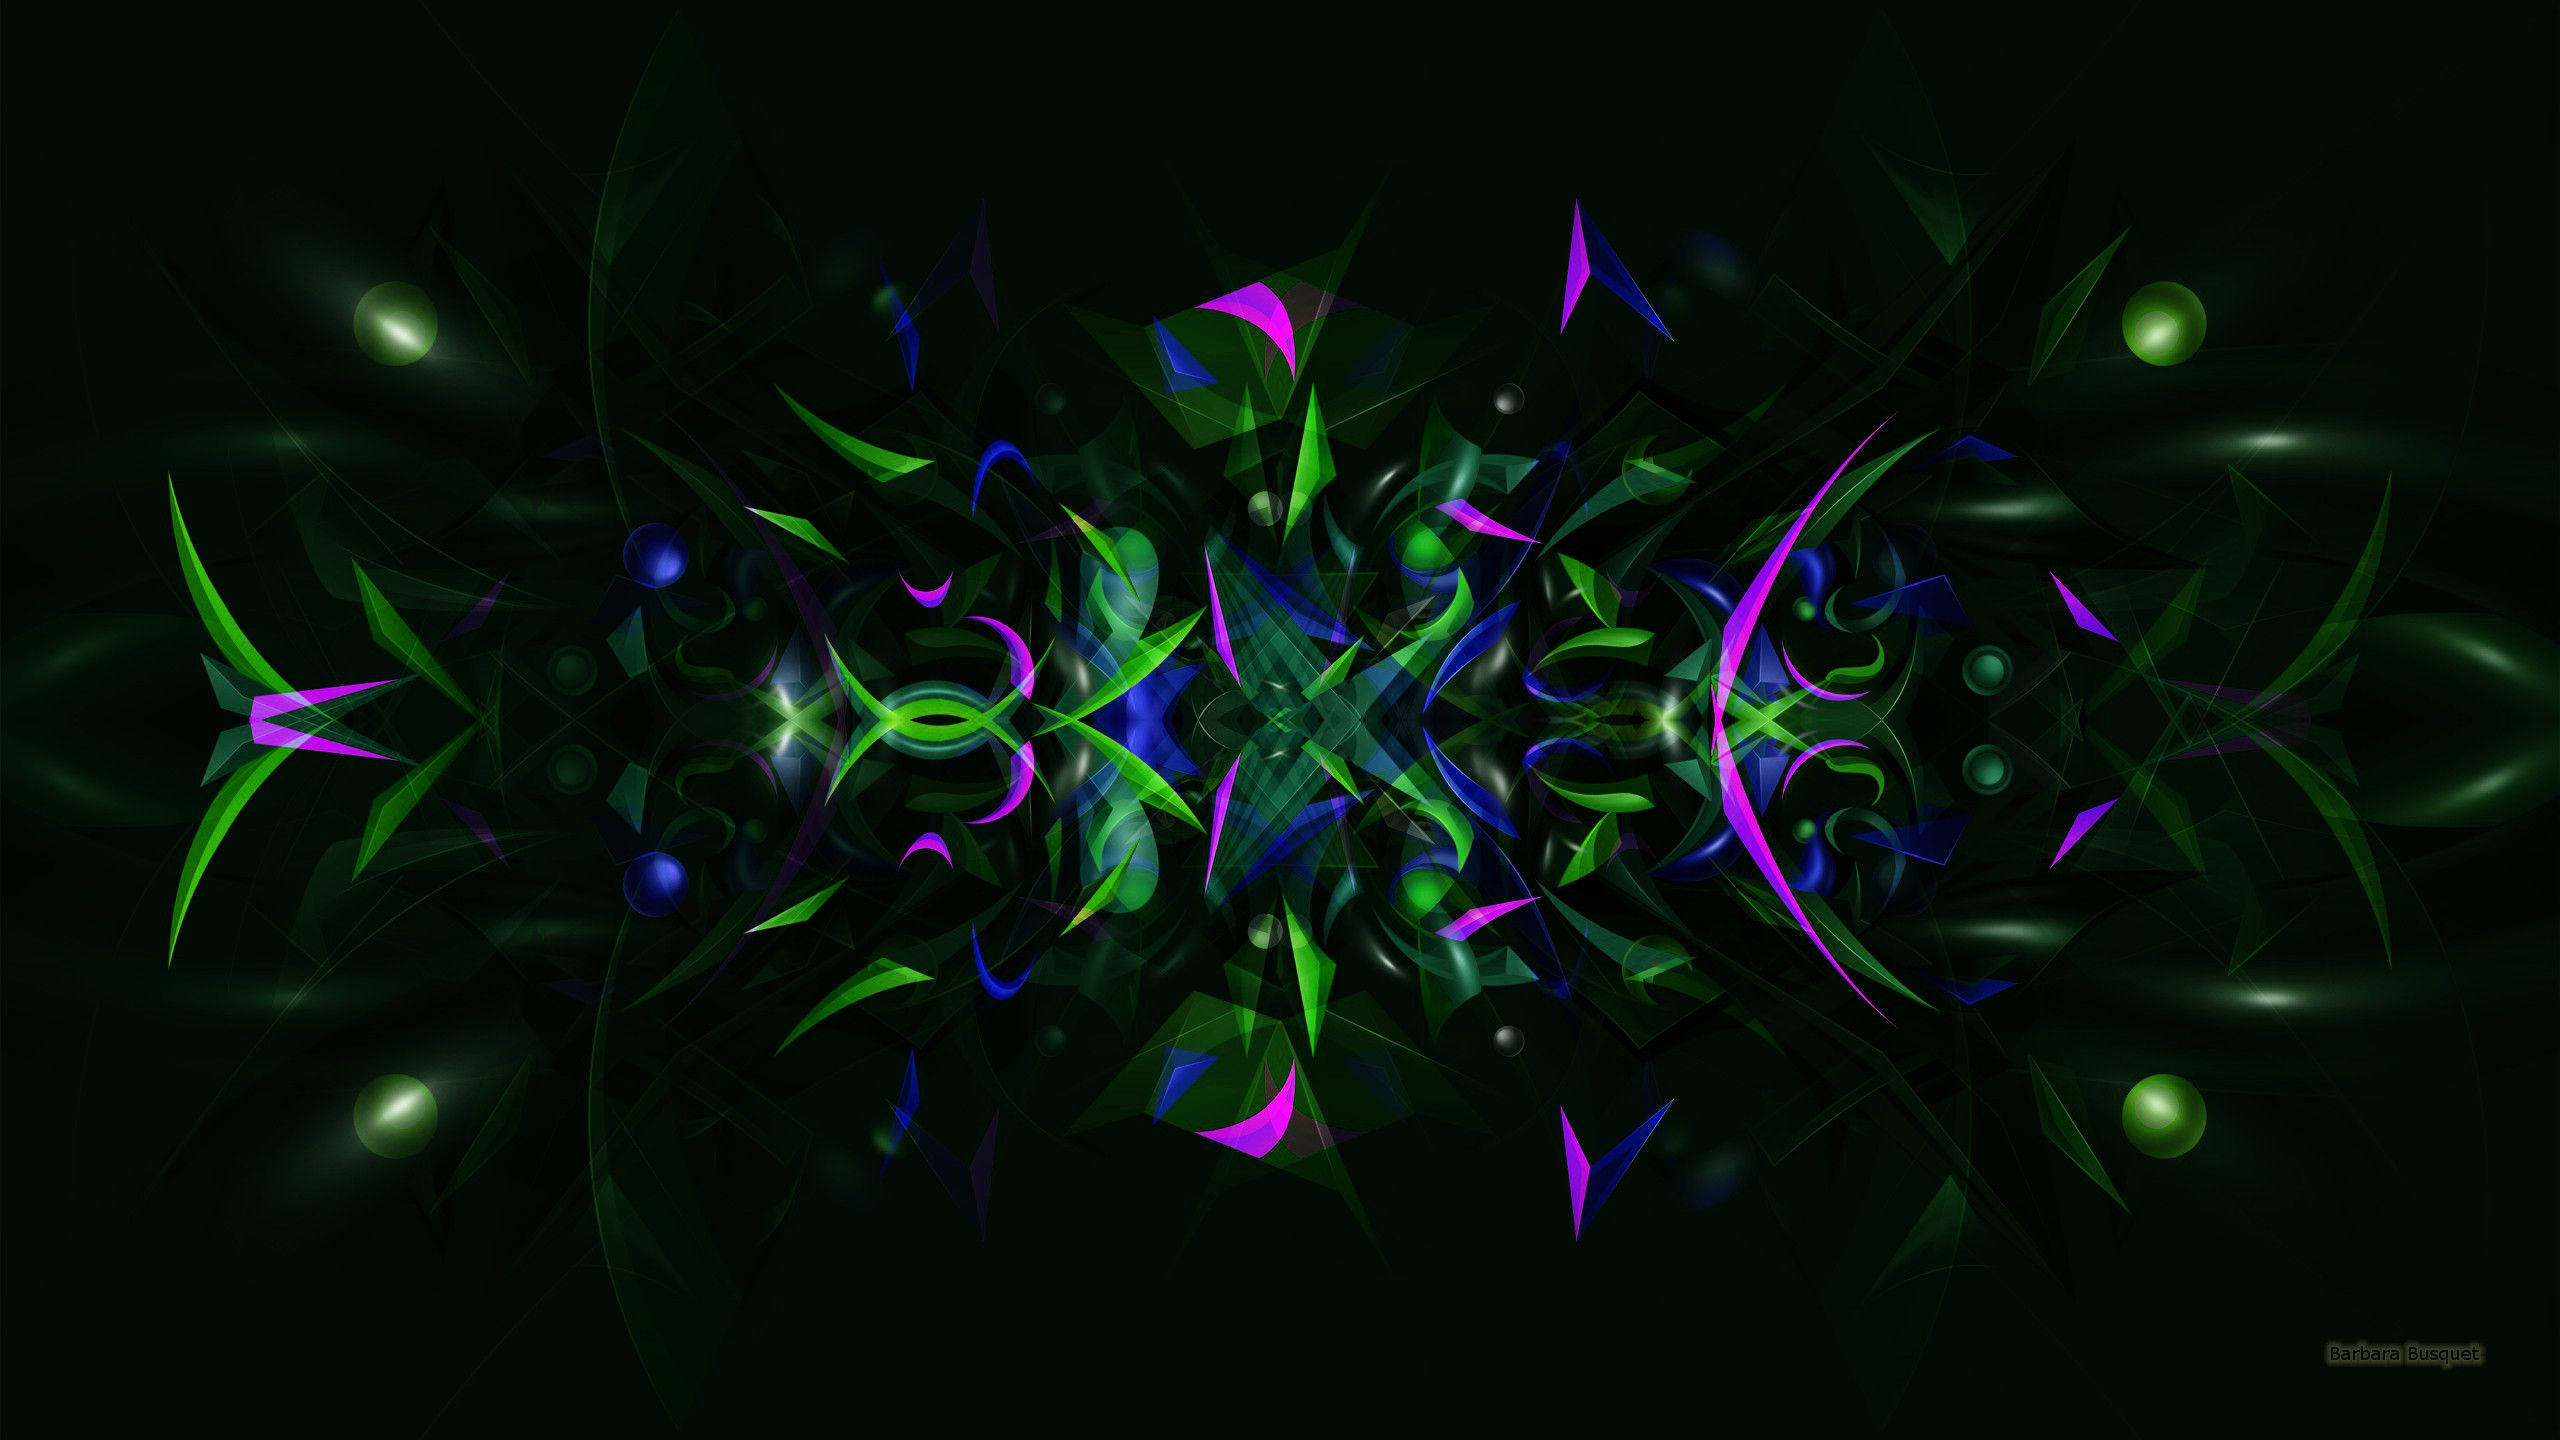 Green And Purple Wallpapers - Top Free Green And Purple